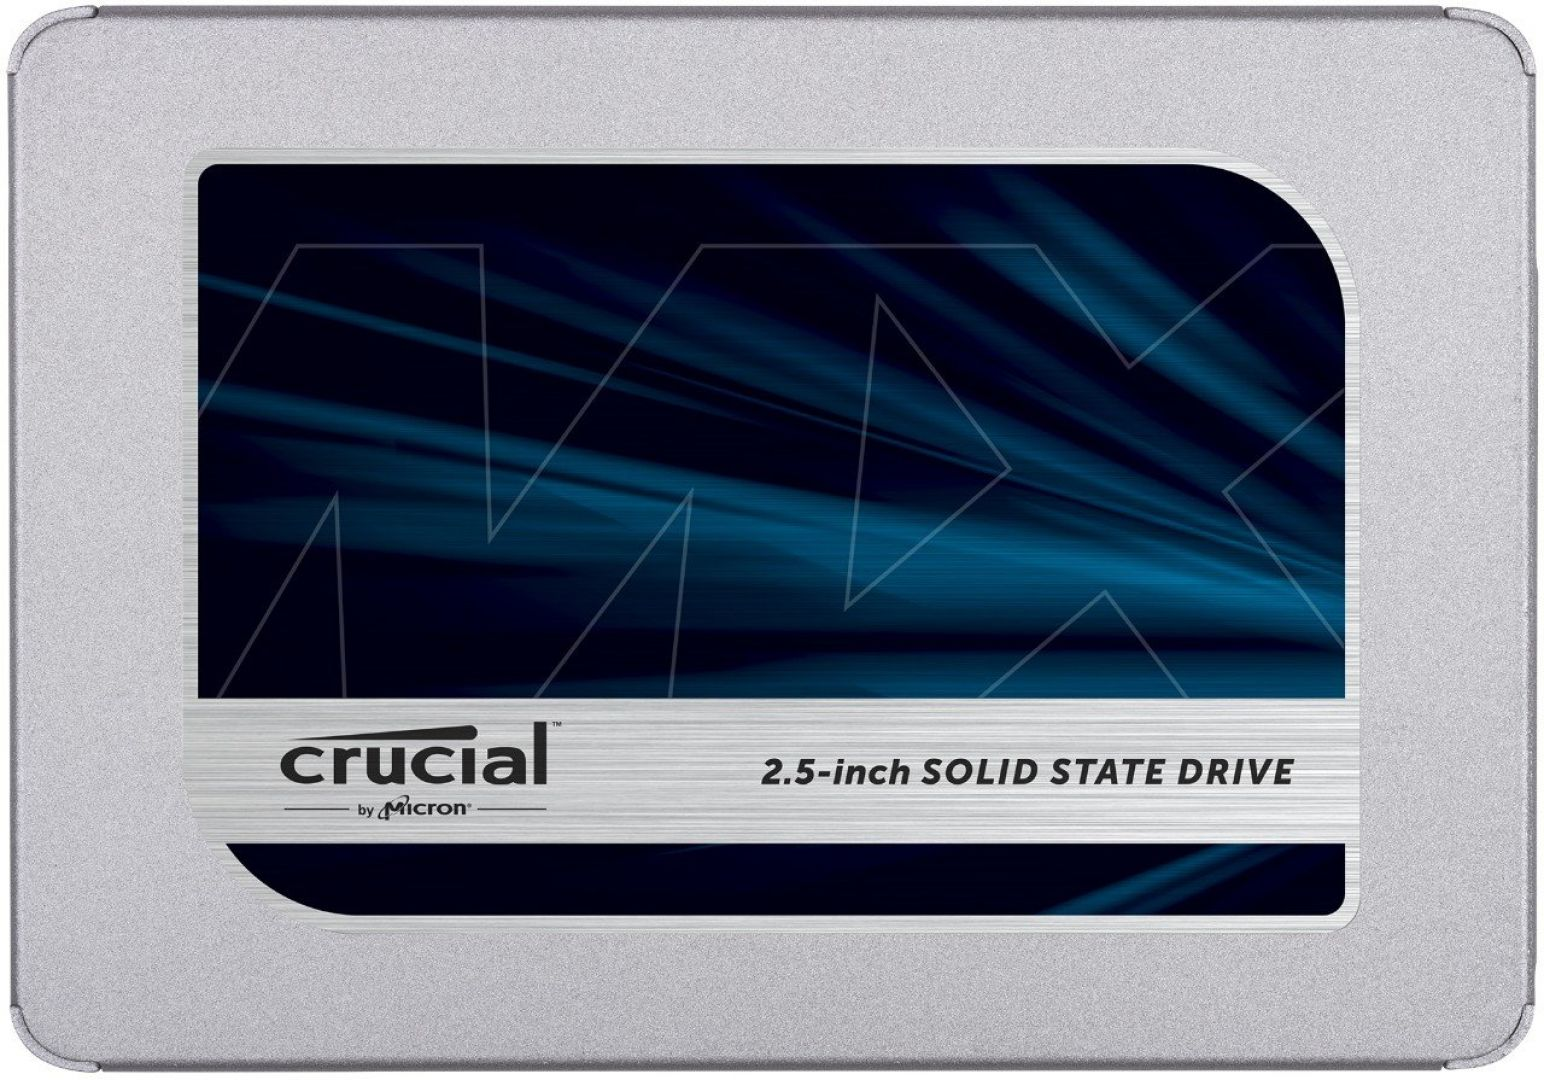 Crucial CT1000MX500SSD1 product image.